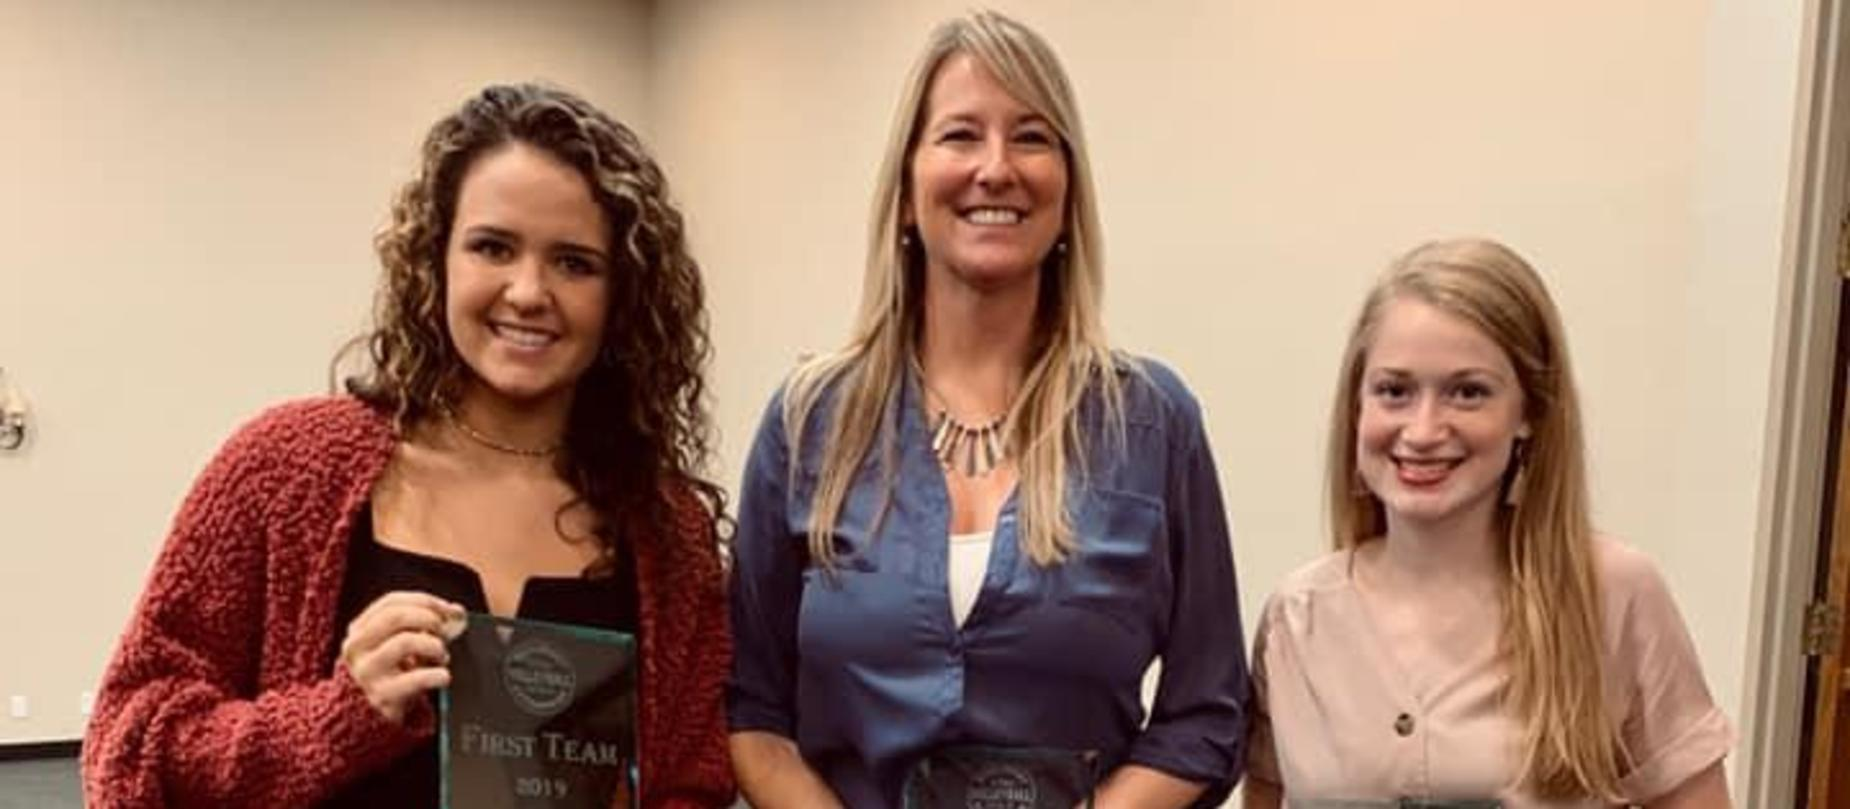 2019 Fall Beaumont Enterprise Super Gold awards recipients